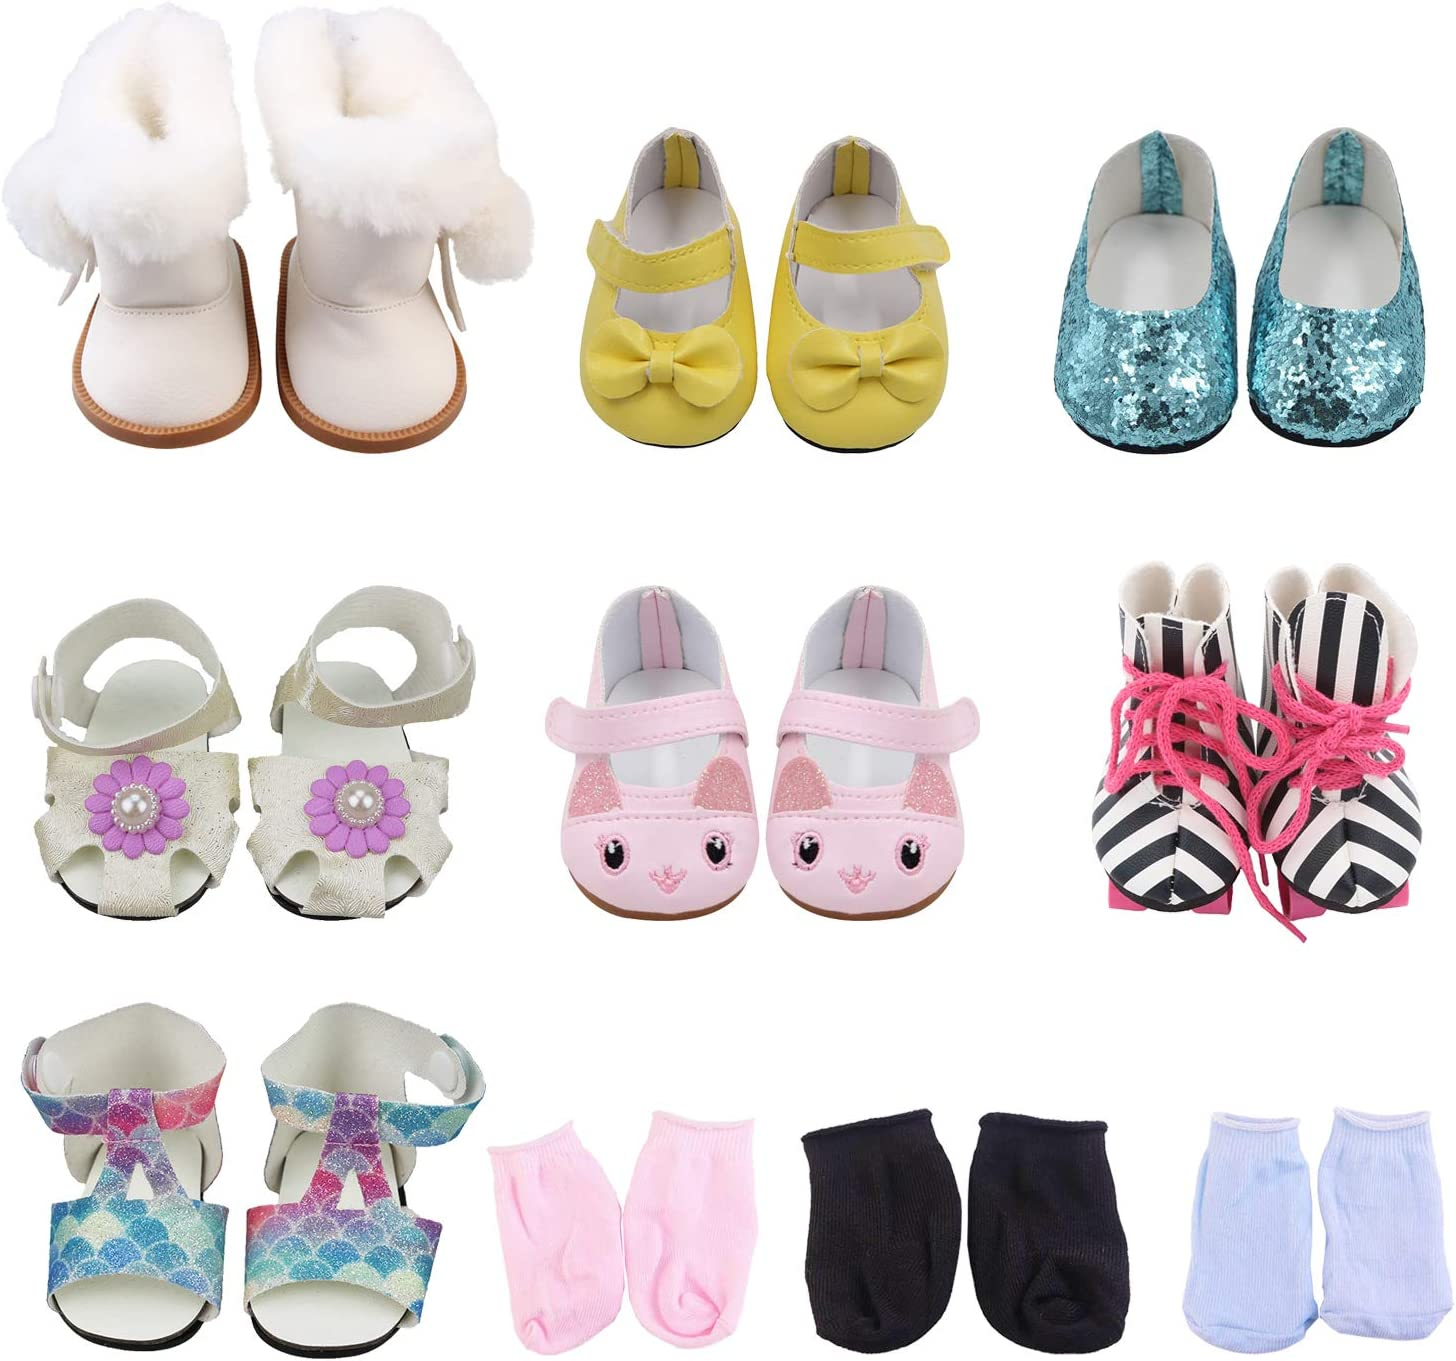 SOTOGO 7 Pairs of 18 Inch Doll Shoes and 3 Pairs of Socks Fits for American 18 Inch Girl Doll Include Boots Leather Shoes Sneakers